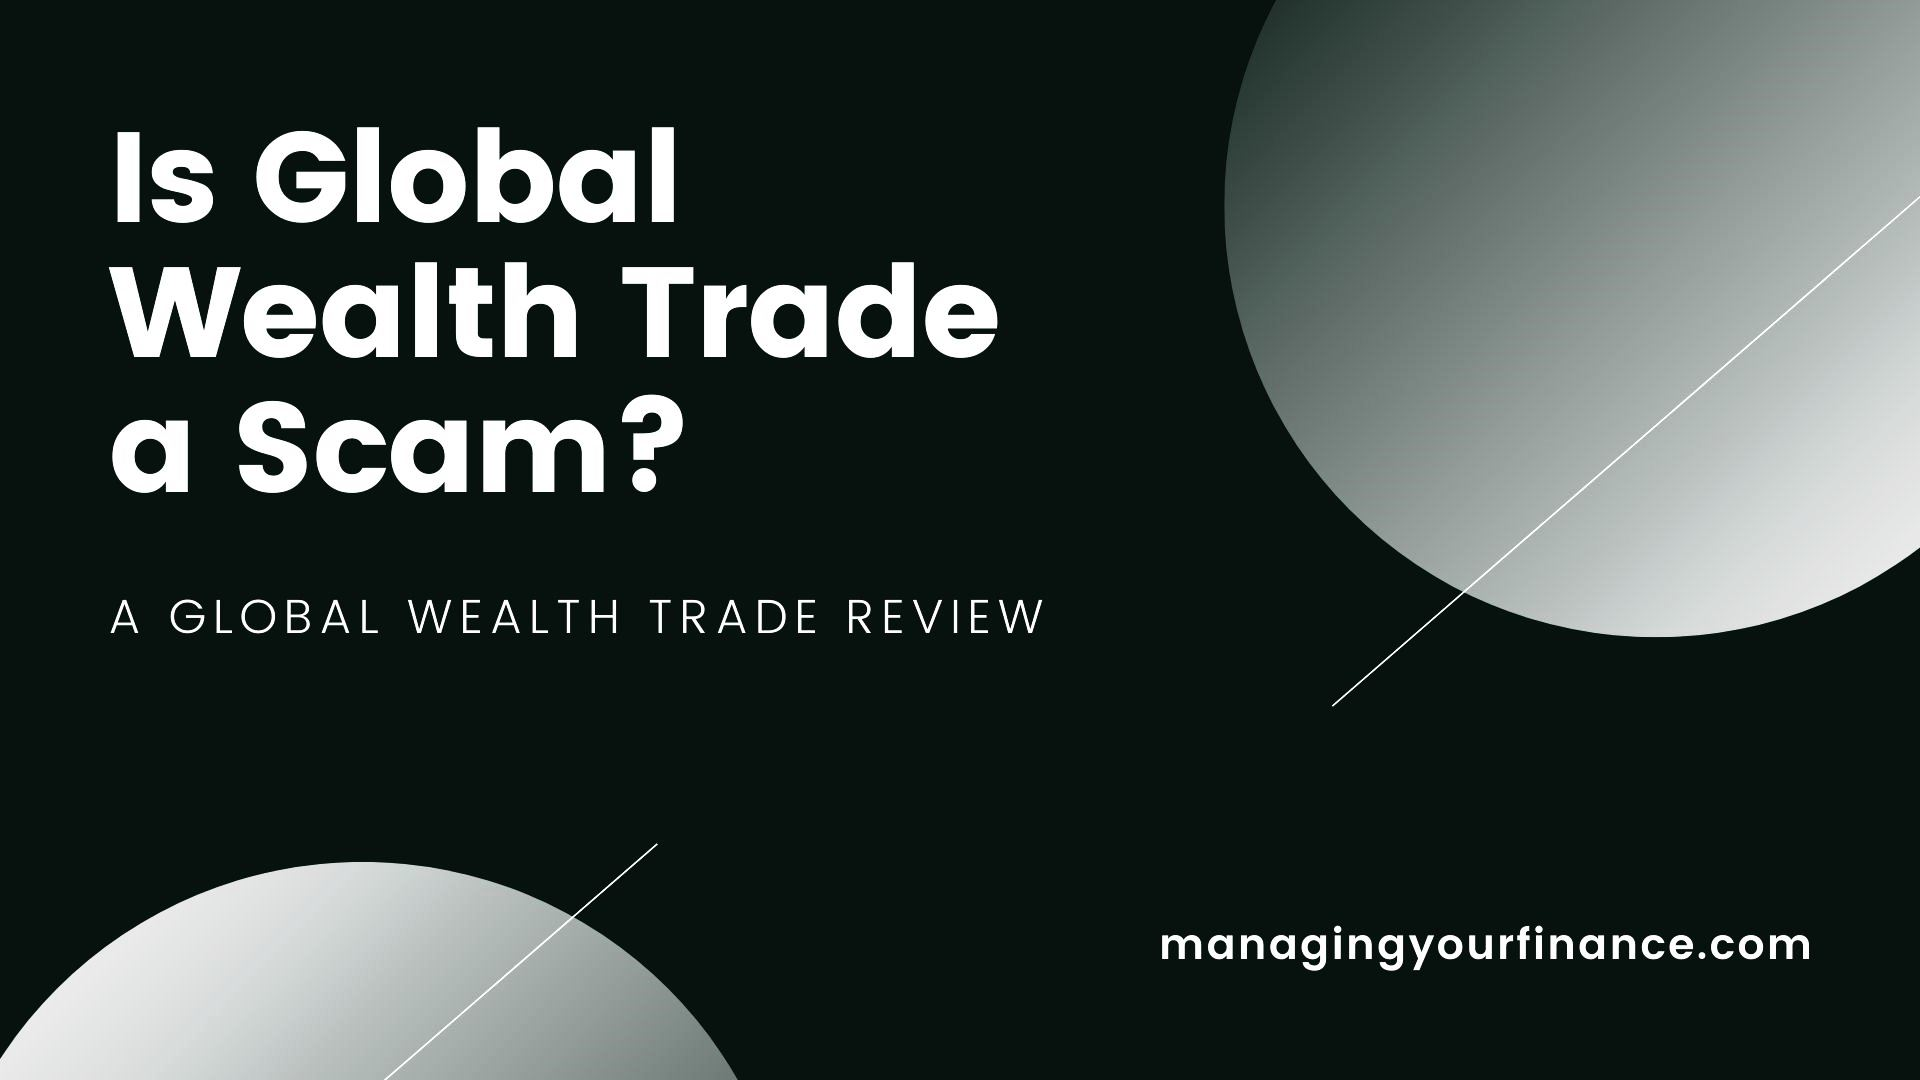 Global Wealth Trade Review-Is Global Wealth Trade a Scam